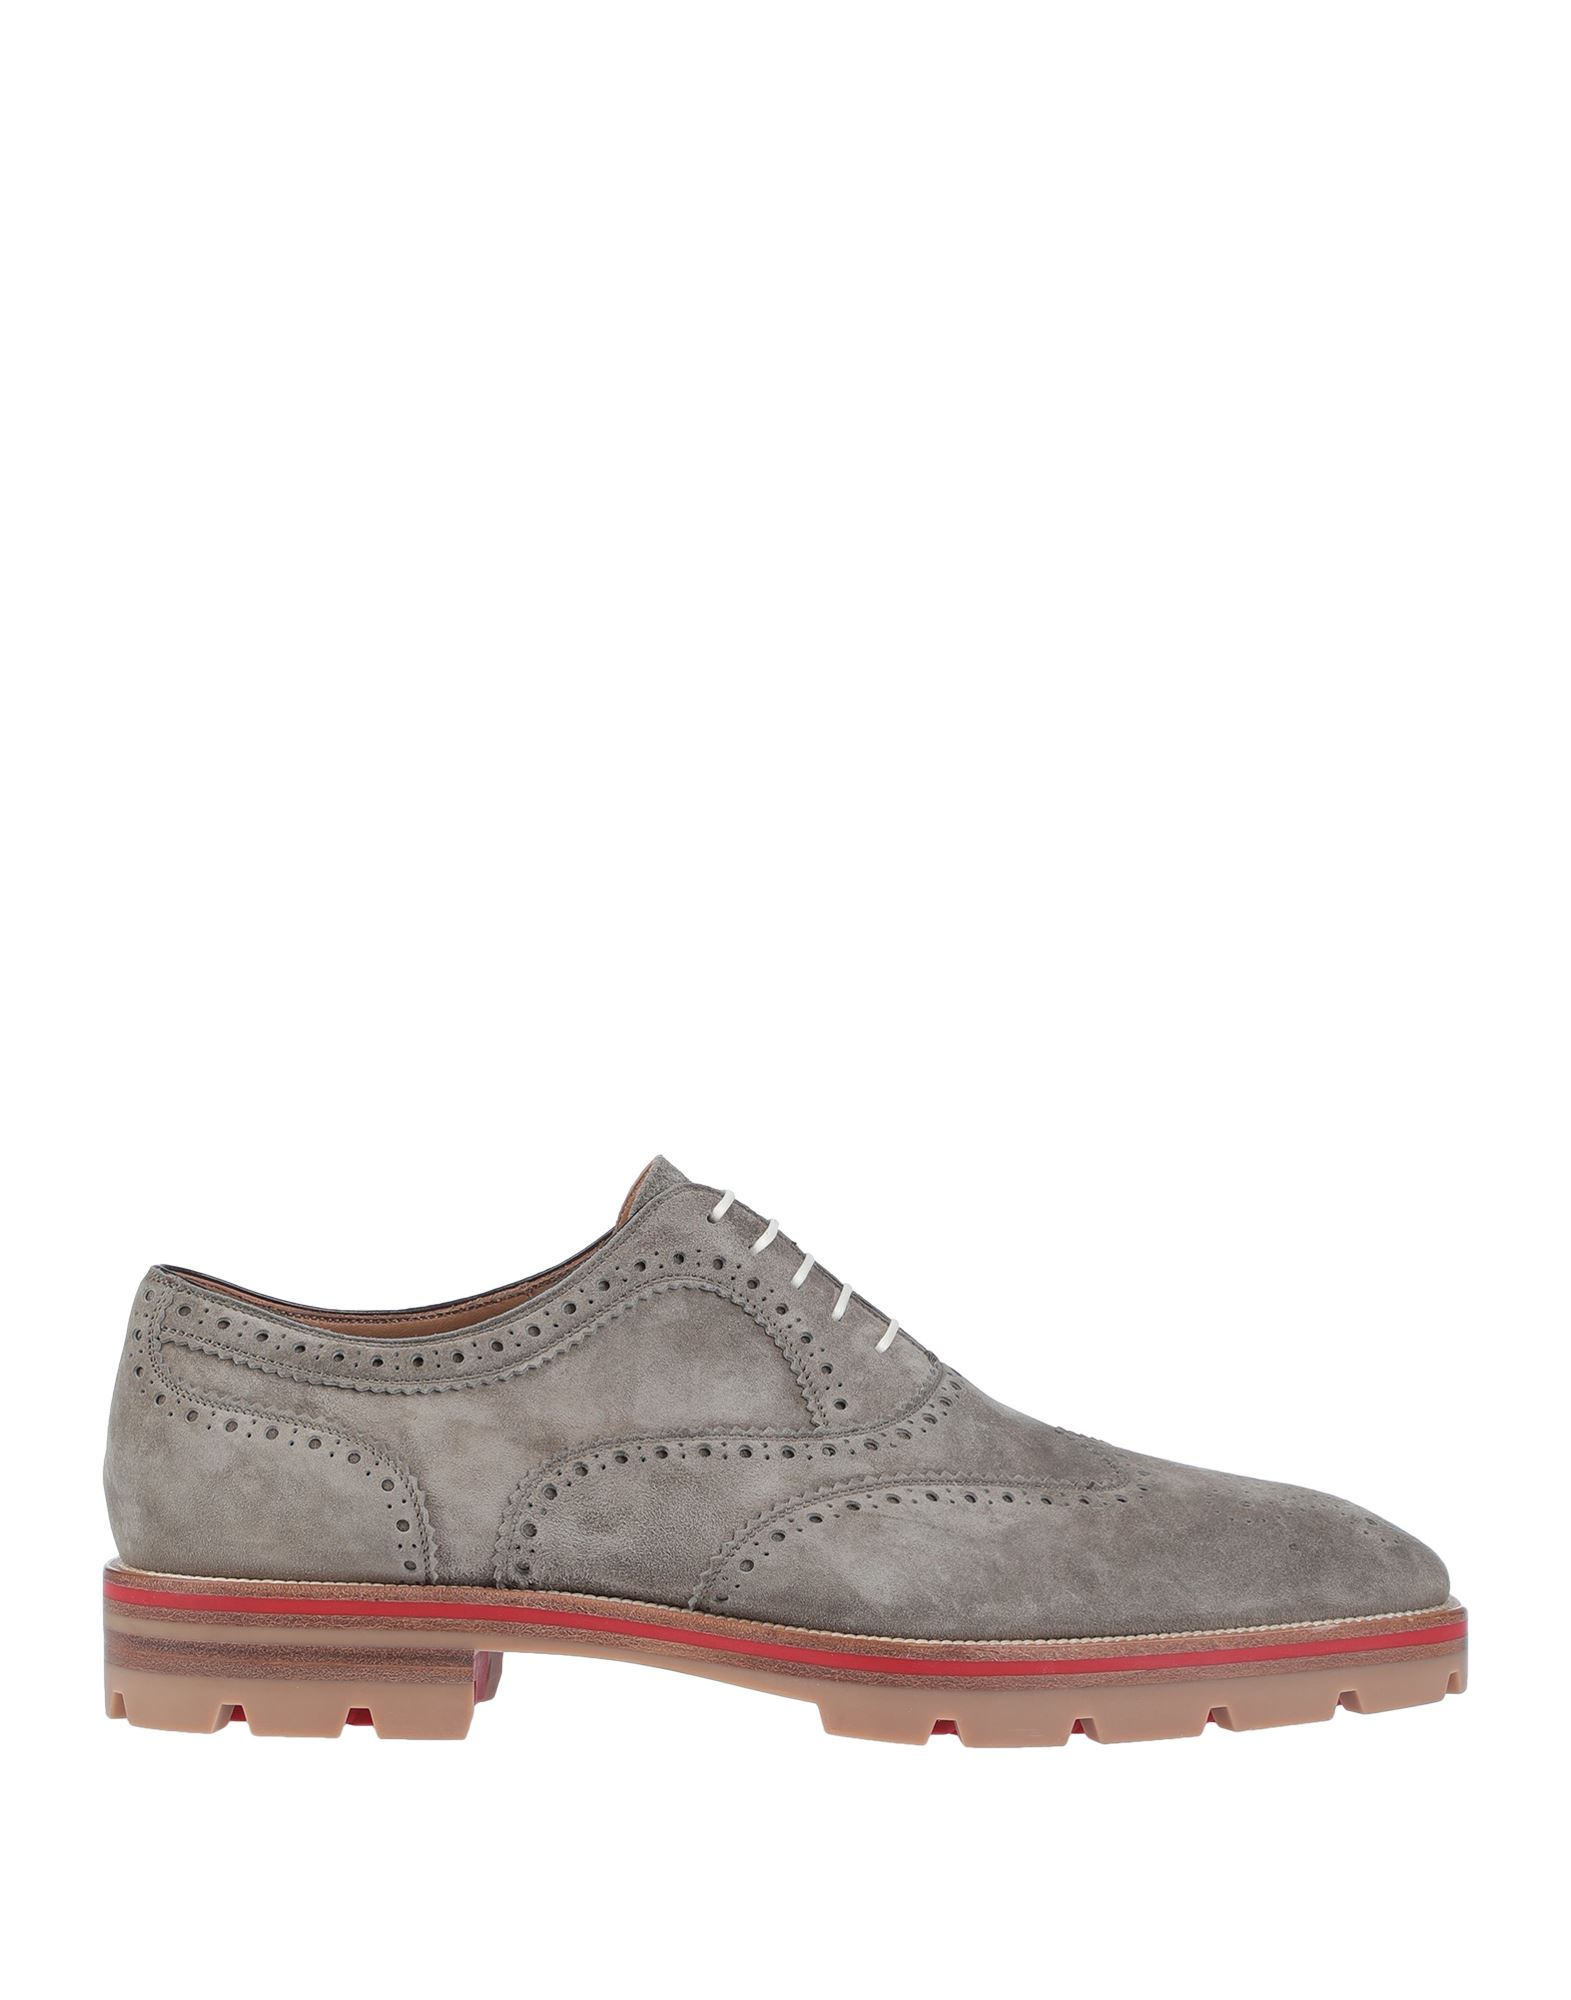 CHRISTIAN LOUBOUTIN Lace-up shoes. suede effect, no appliqués, solid color, square toeline, square heel, rubber cleated sole, rubber lining, contains non-textile parts of animal origin. Soft Leather